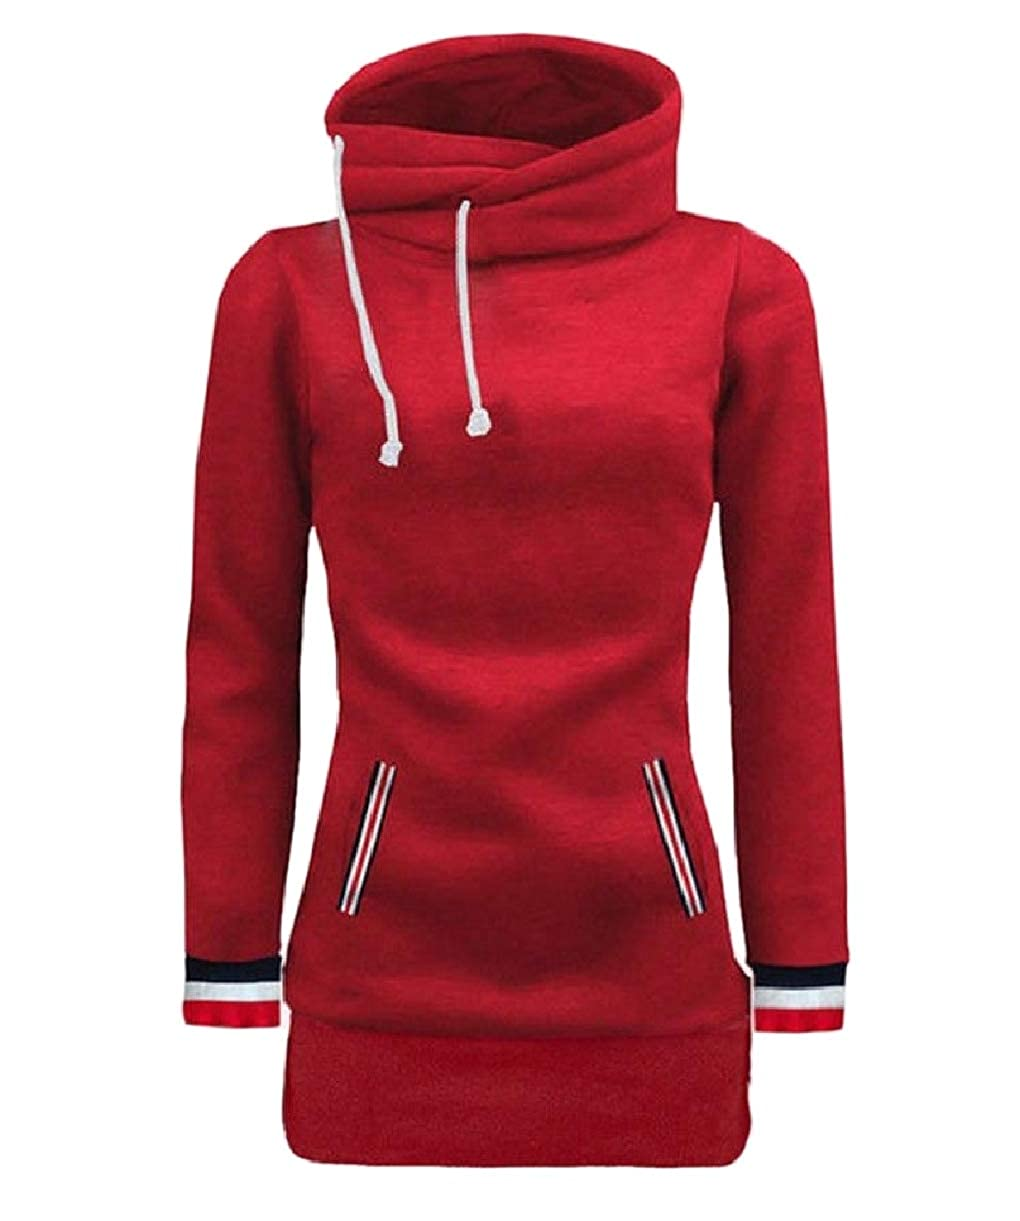 SportsX Women Slimming Hooded Top Classics Mid Long Pullover Sweatshirt